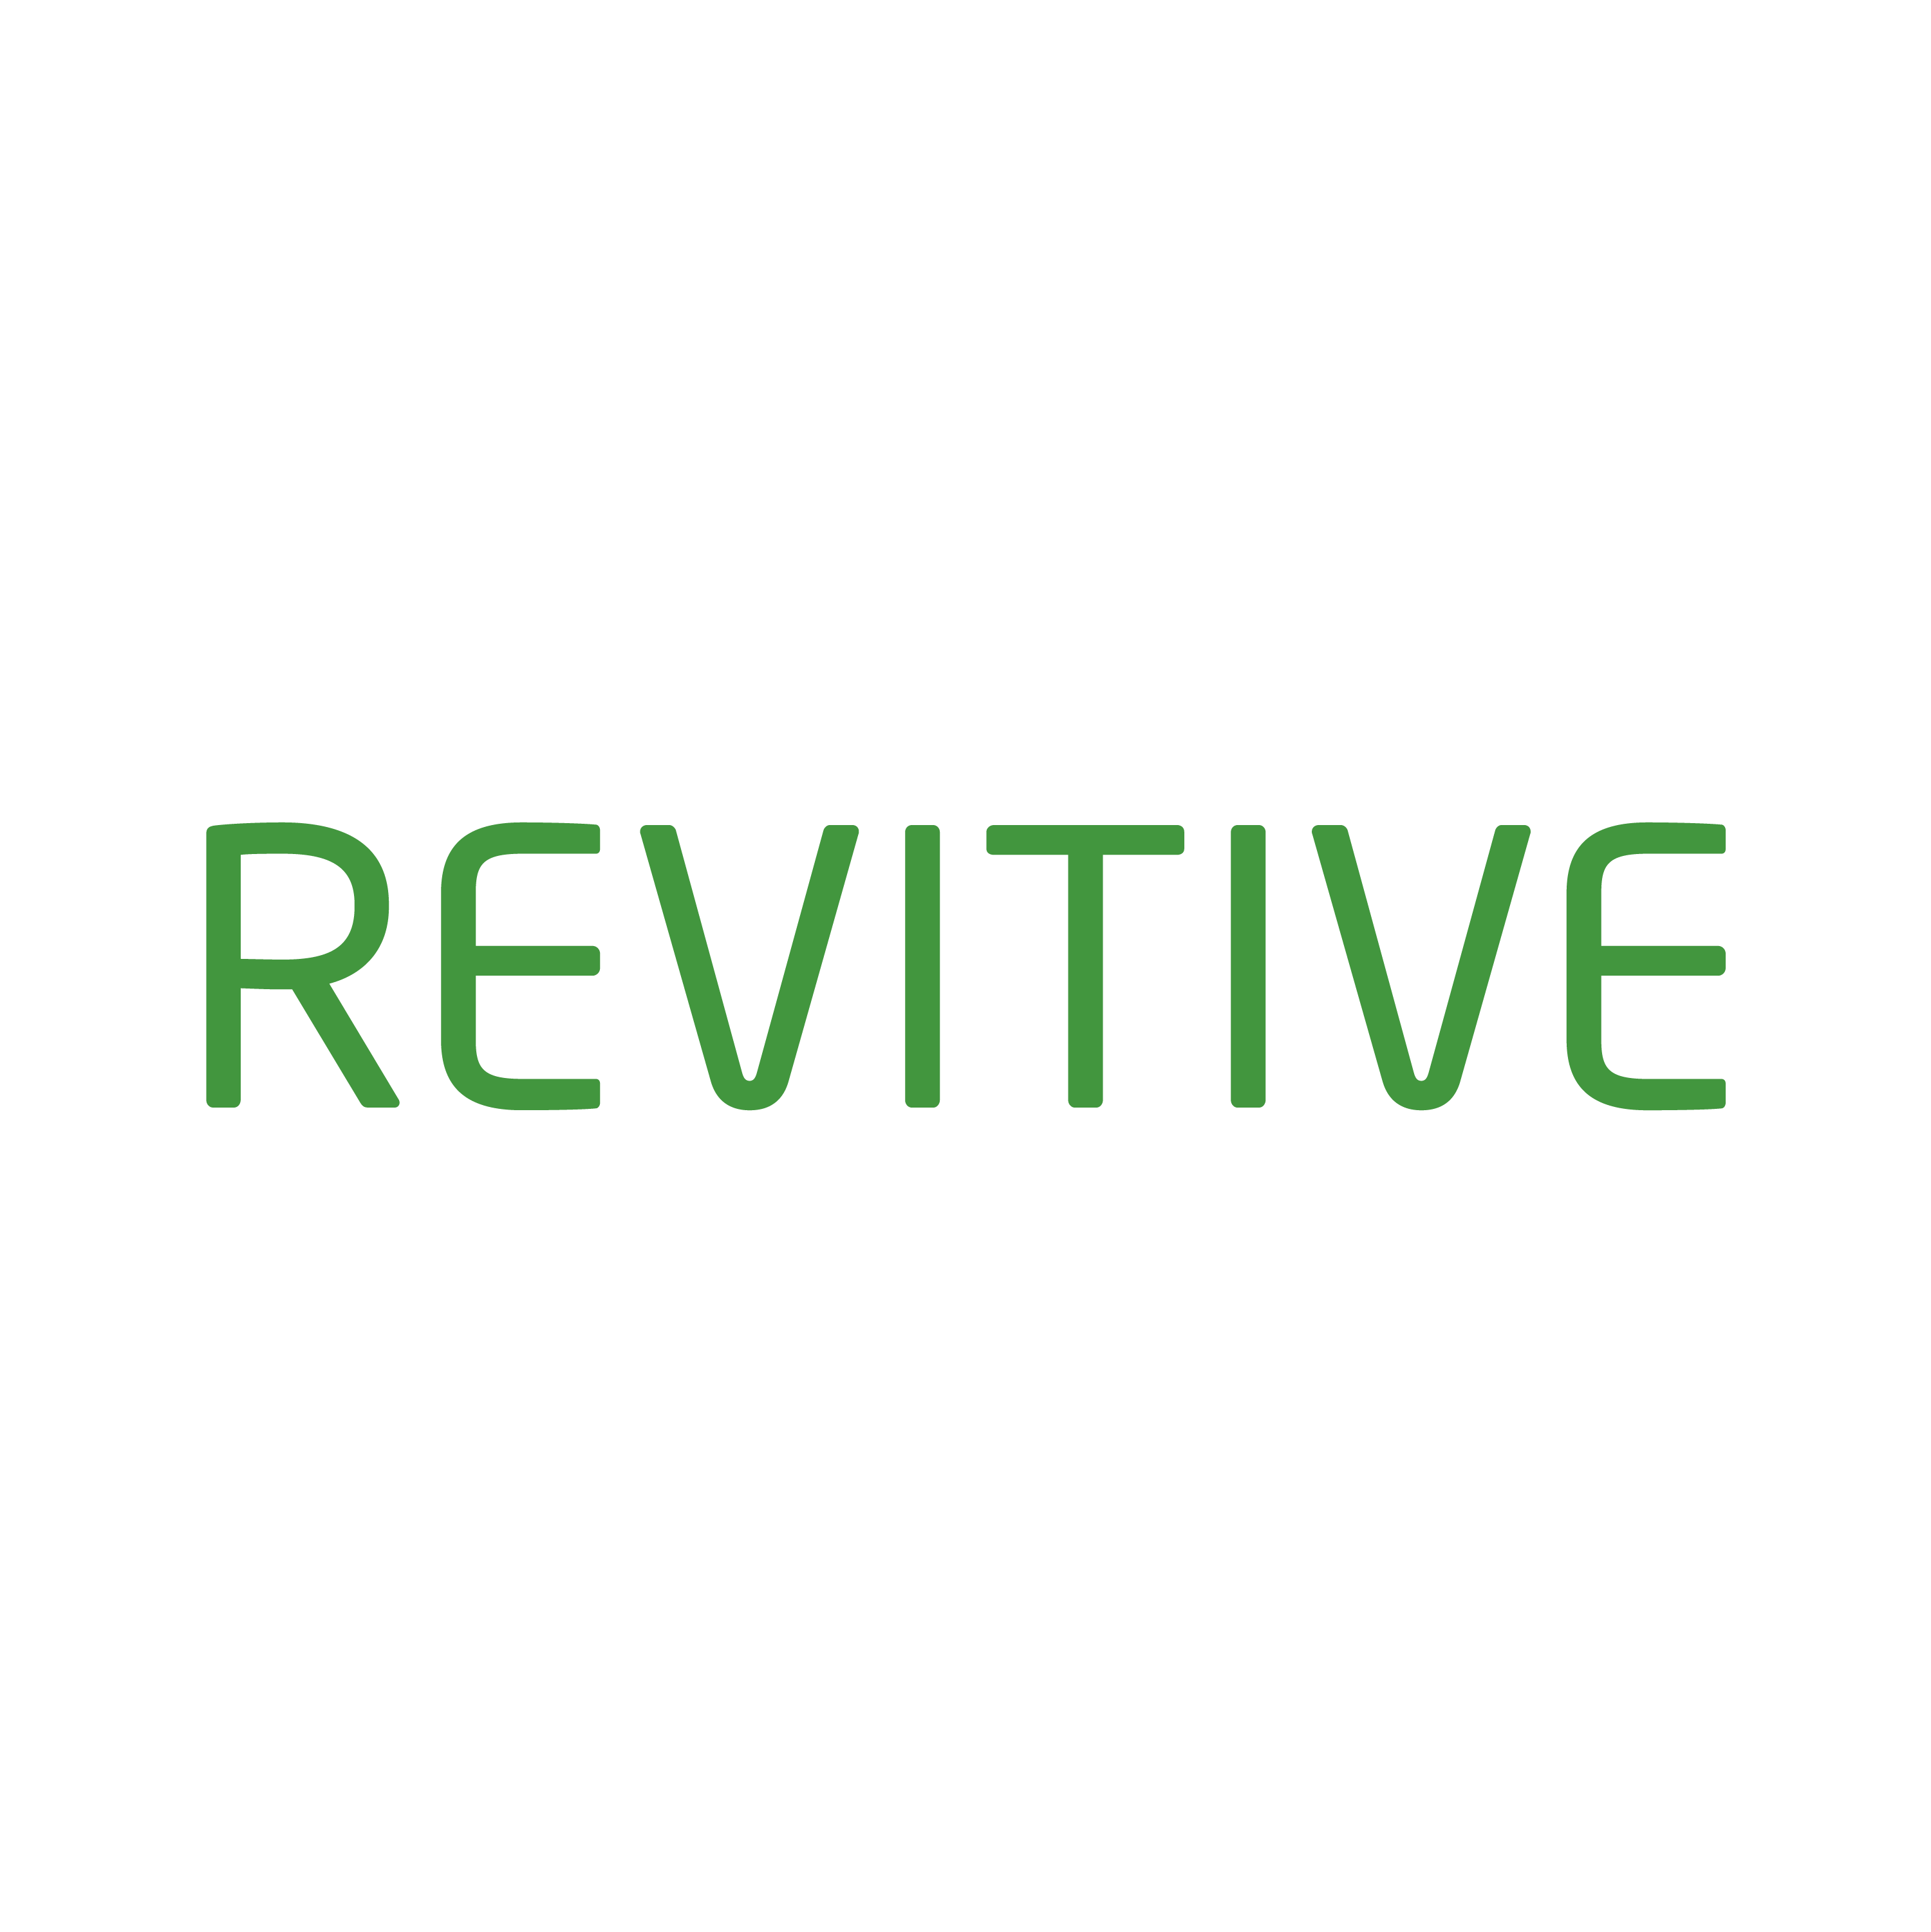 Revitive Coupons & Promo Codes